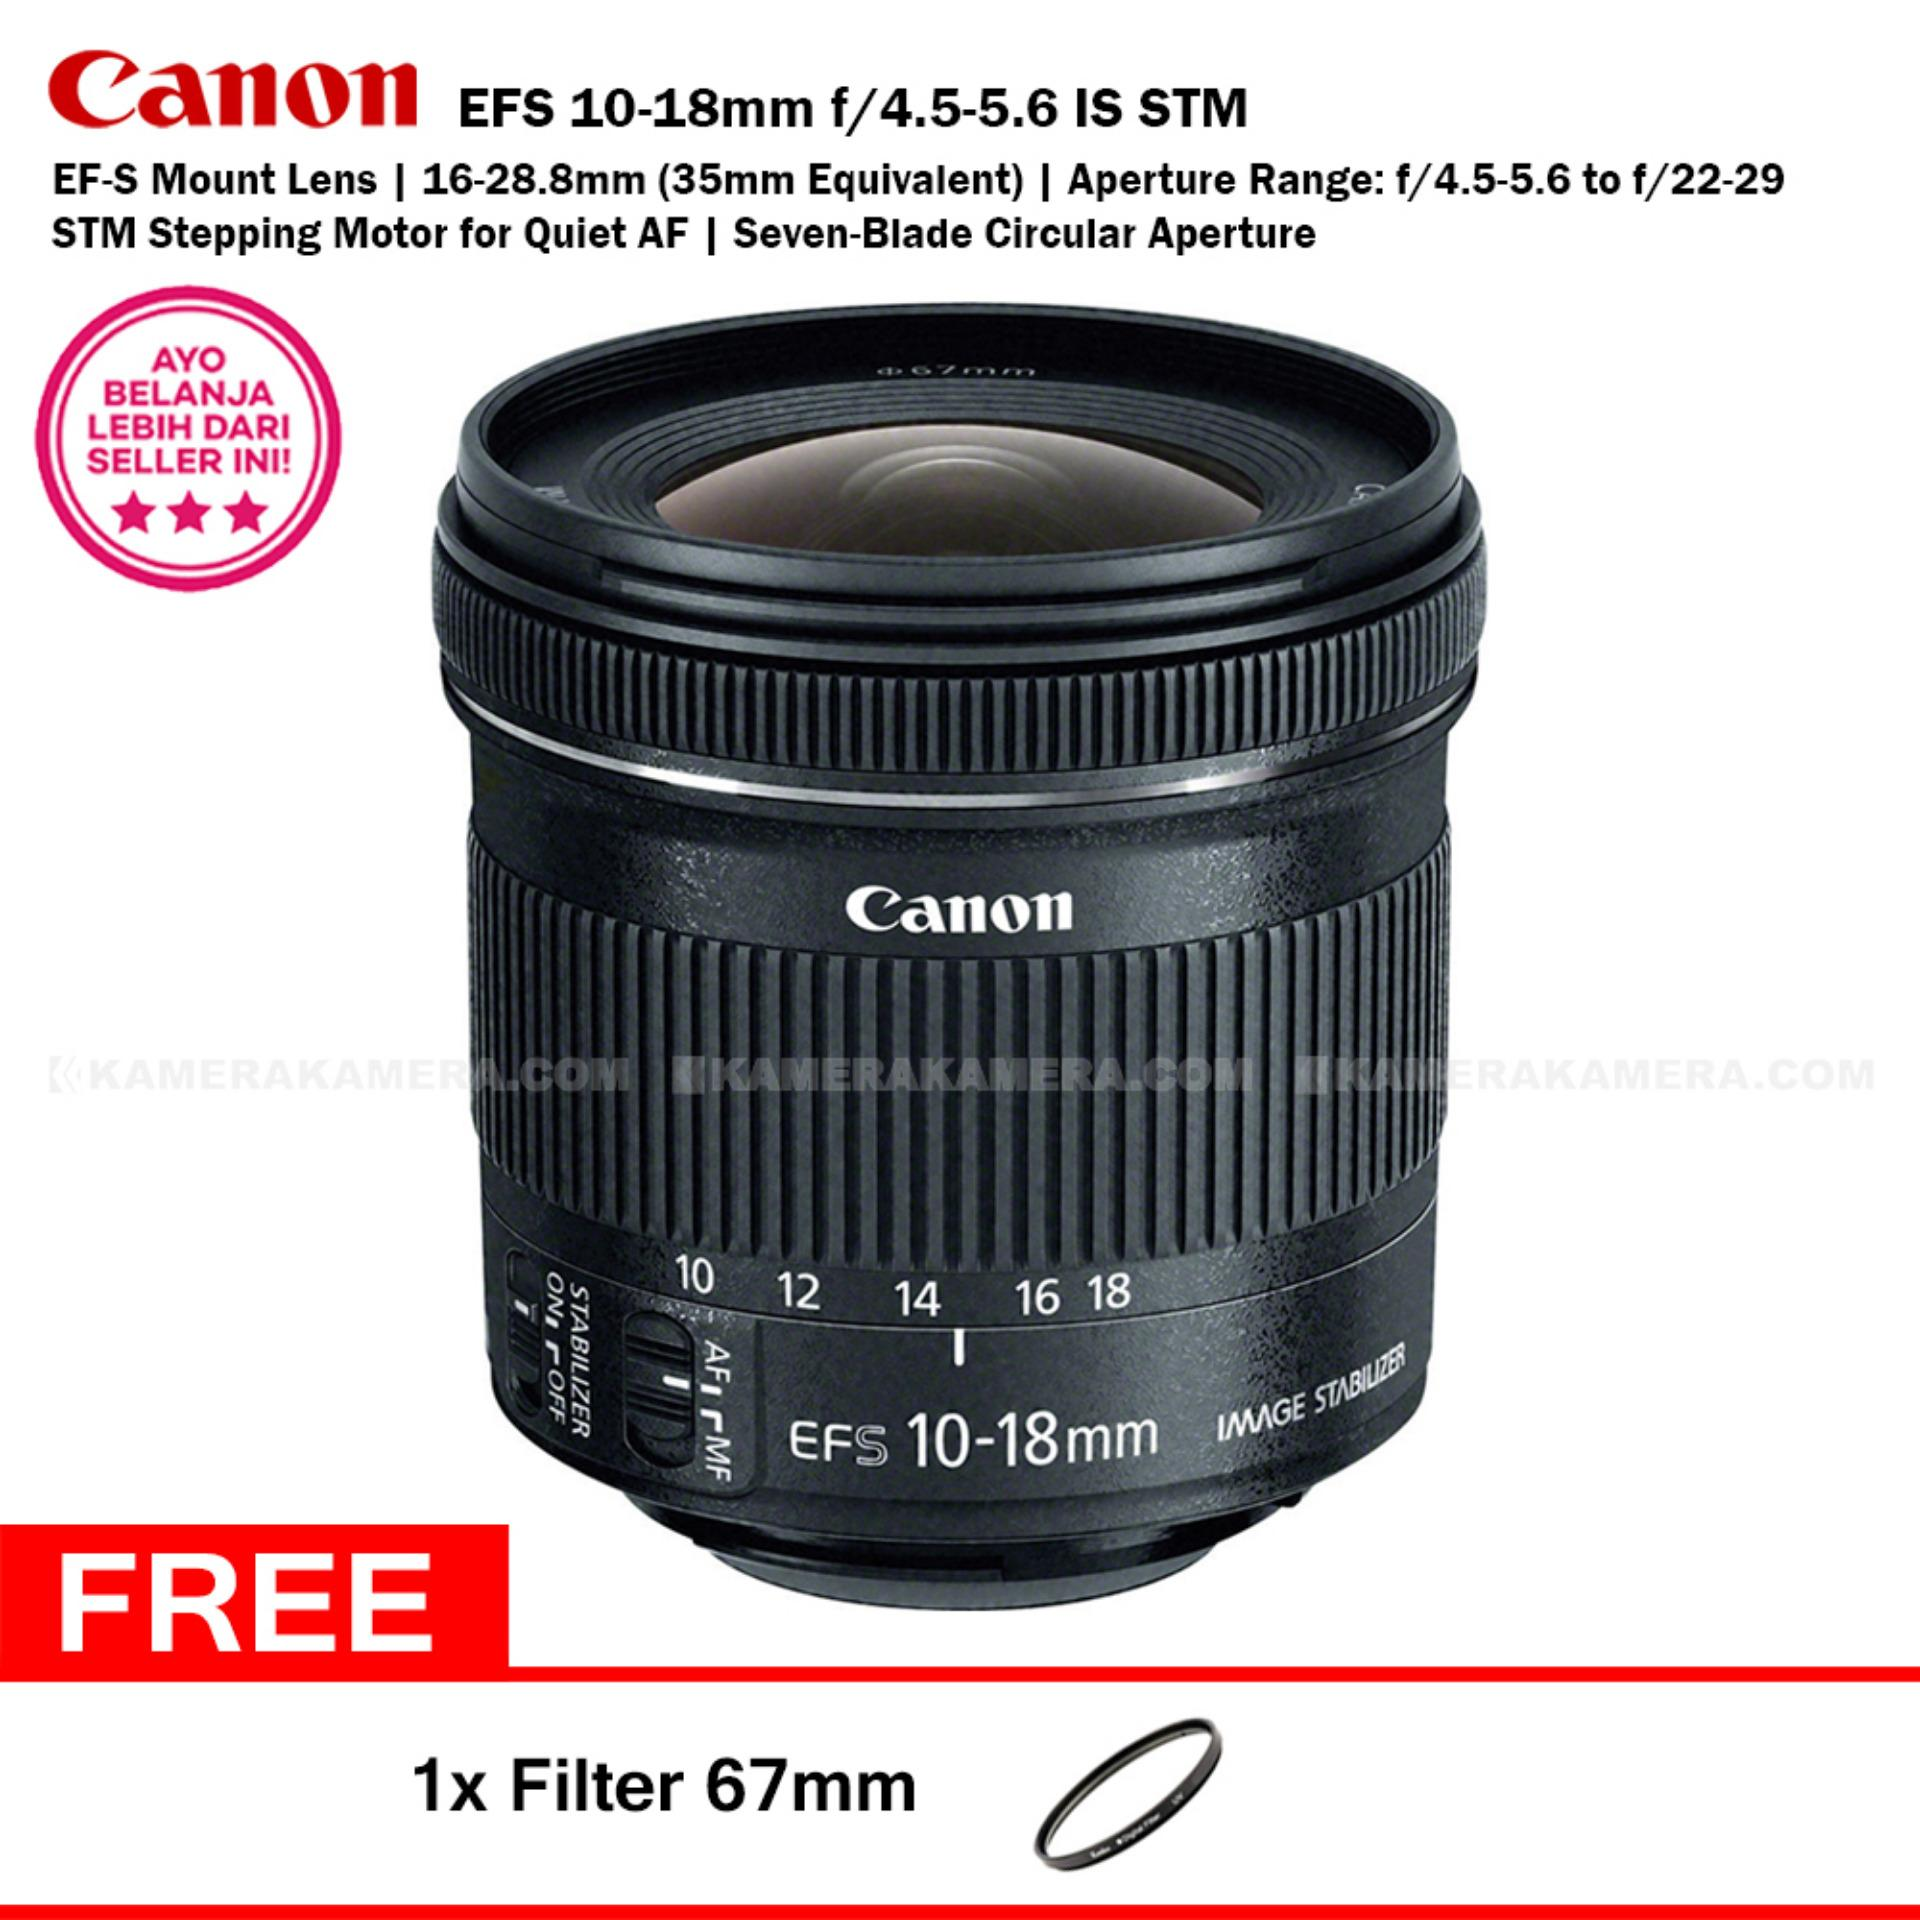 Canon EFS 10-18mm f/4.5-5.6 IS STM - Stepping Motor for Quiet AF 7 Blade Circular Aperture + Filter 67mm